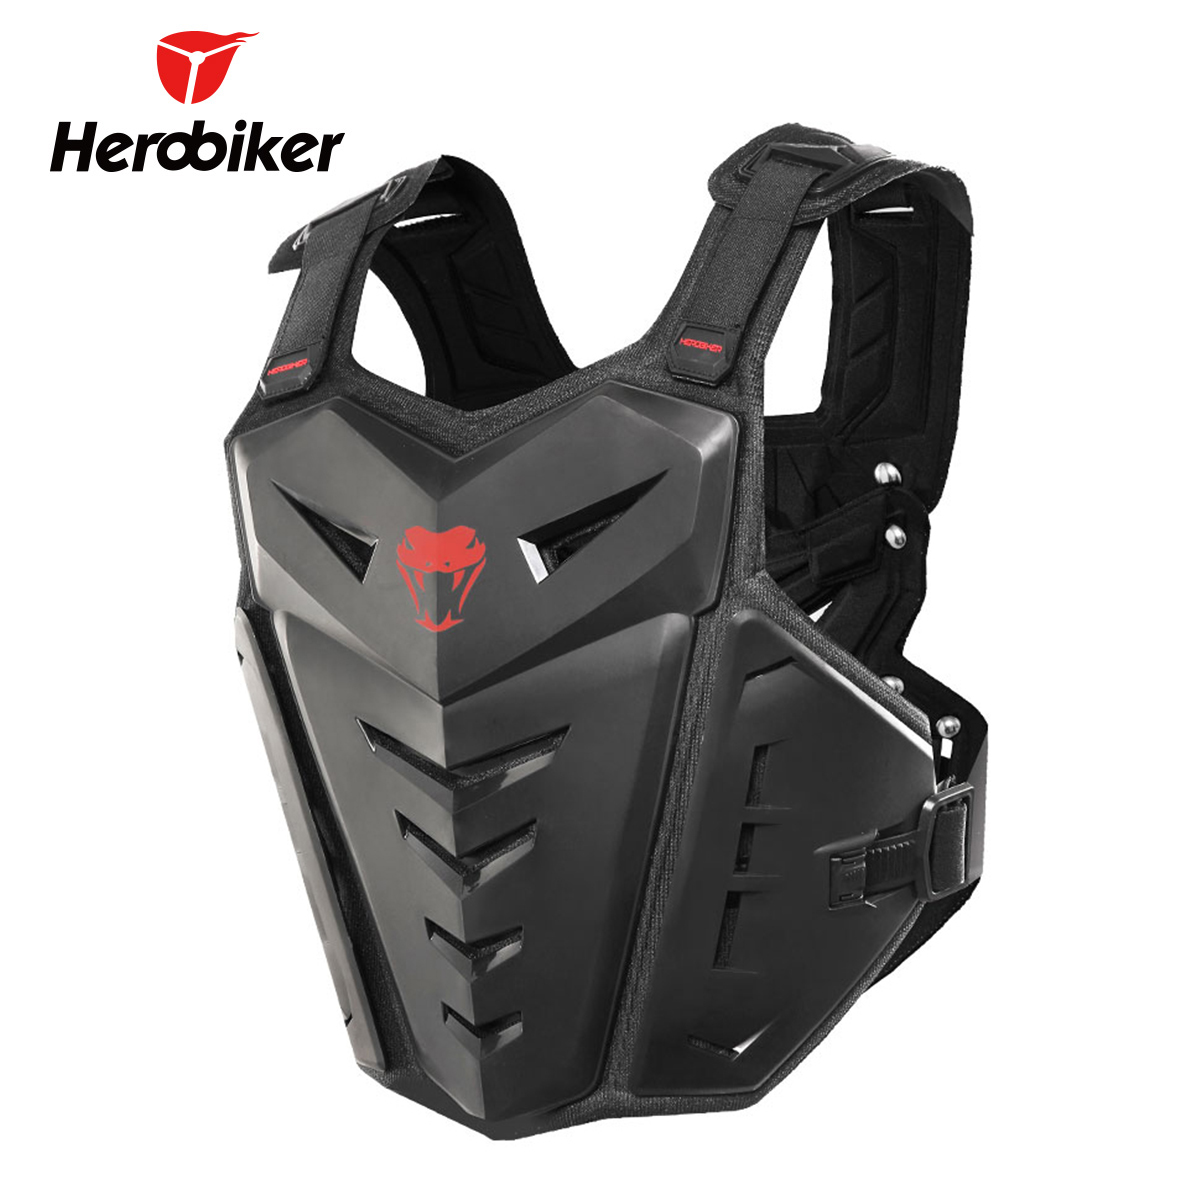 HEROBIKER Motorcycle Body Armor Moto Motocross Vest Motorcycle Armor Vest Back Chest Protector Motocross Armor Protective Gear herobiker armor removable neck protection guards riding skating motorcycle racing protective gear full body armor protectors